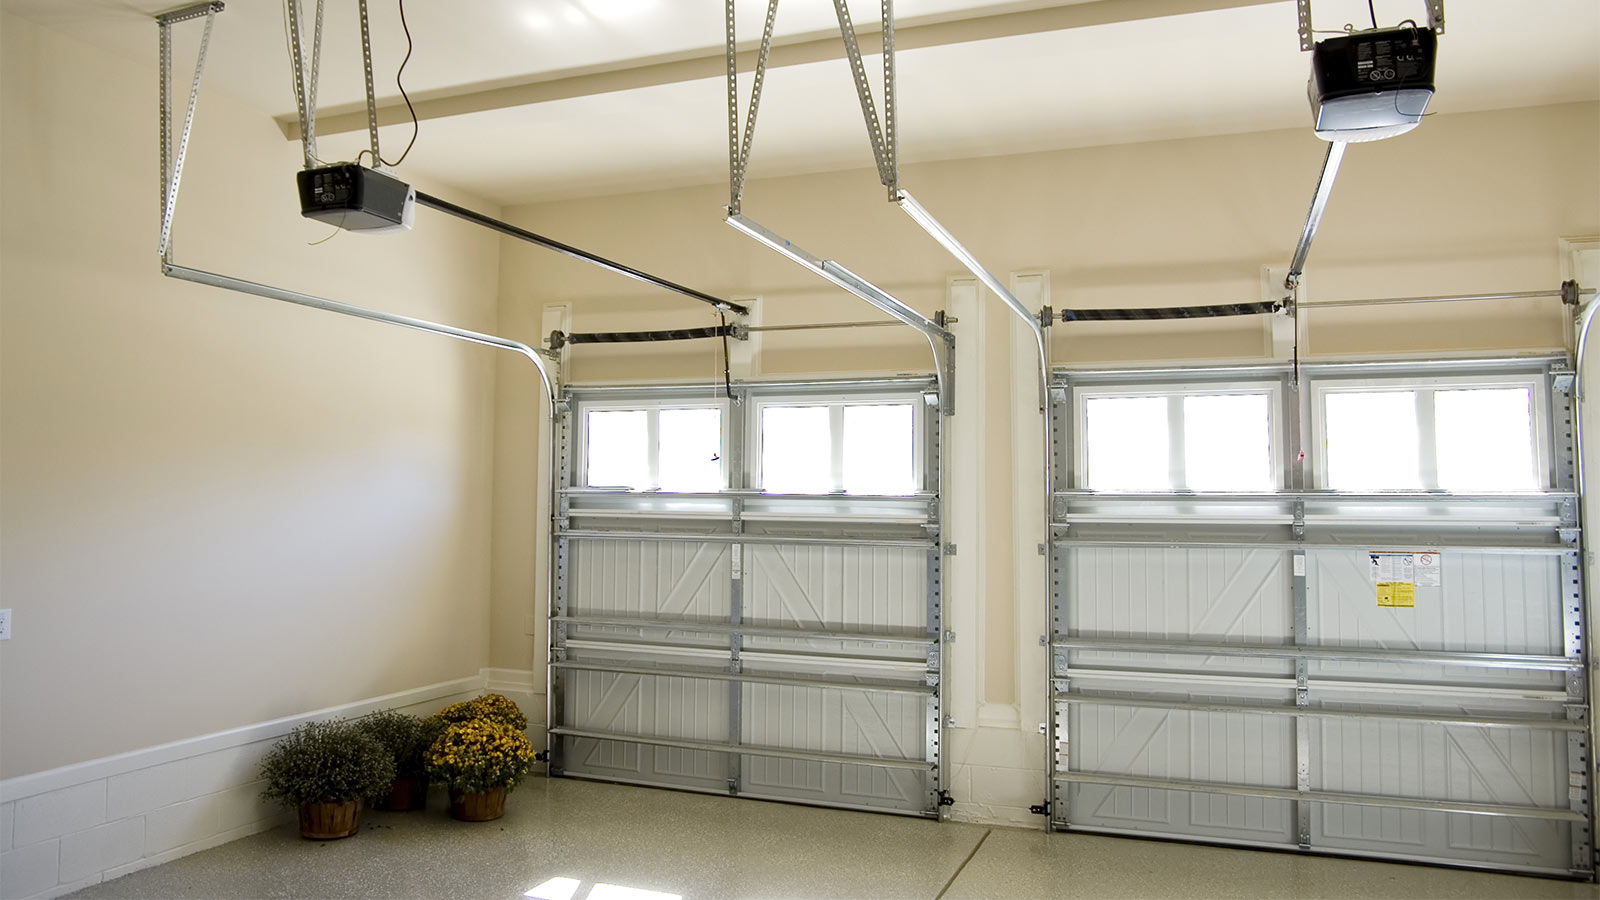 Sectional Garage Doors from Security Gates Maldon suppliers.